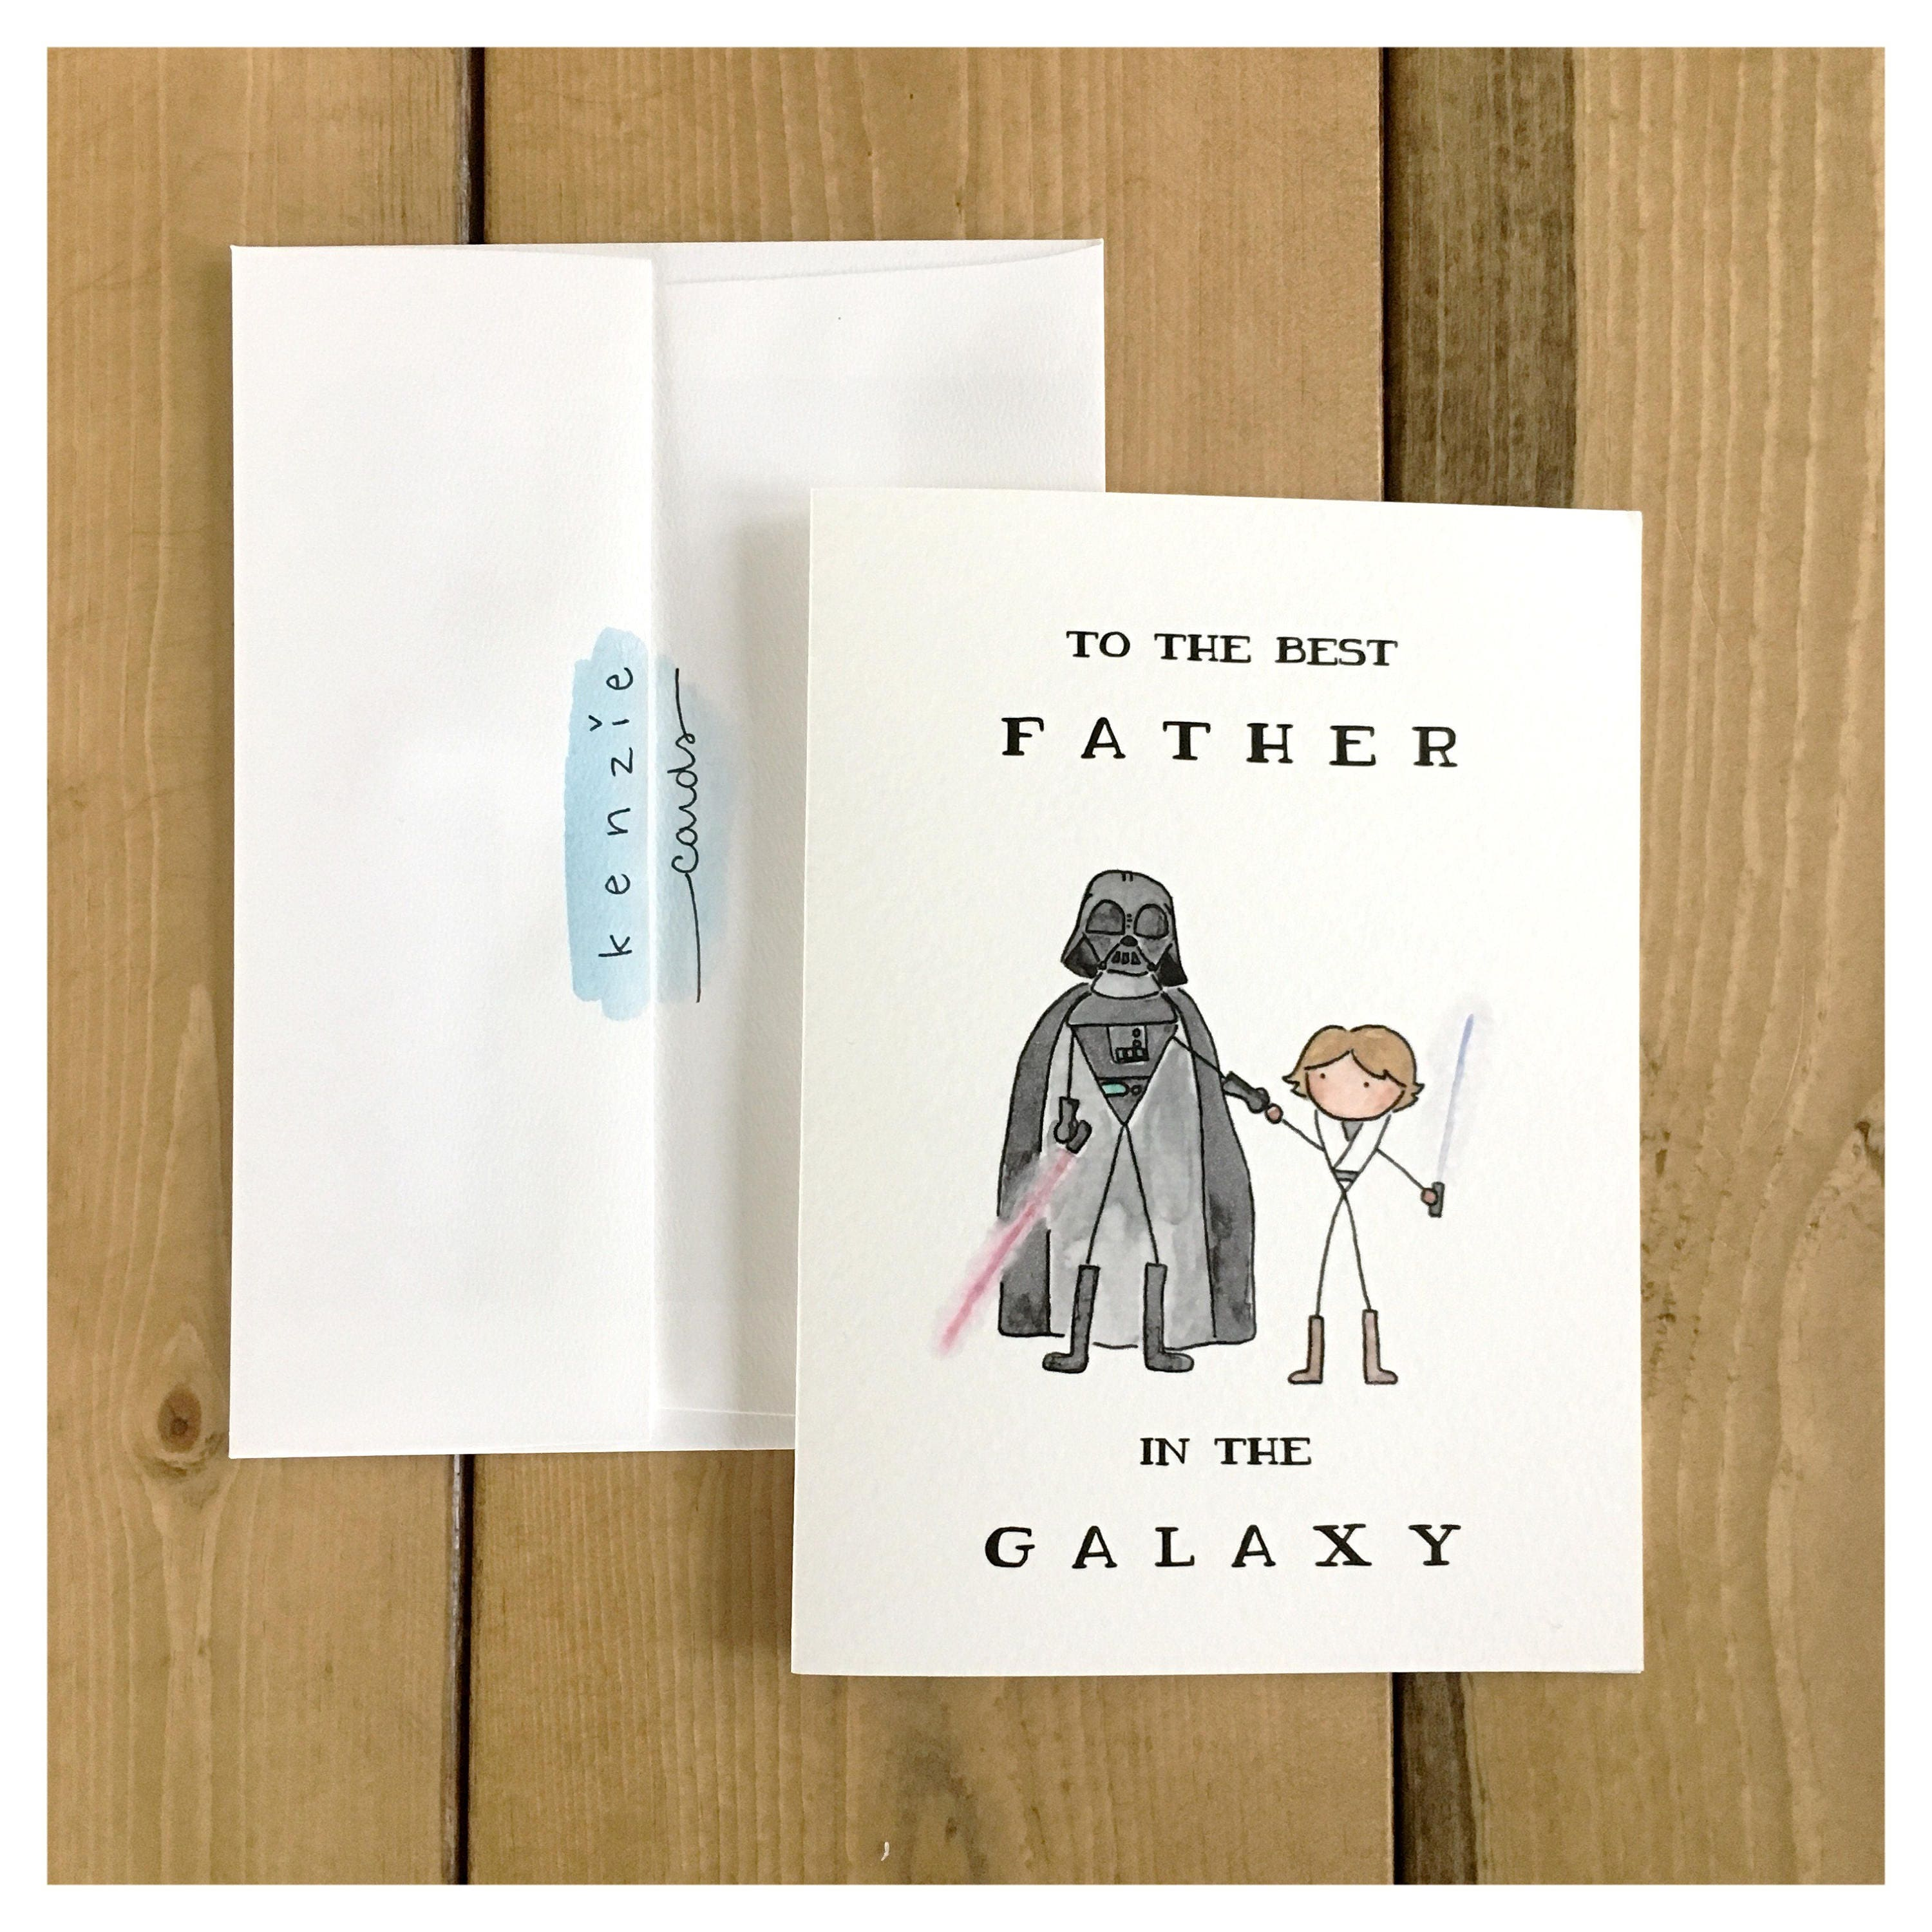 Best Father In The Galaxy Luke Skywalker Darth Vader Fathers